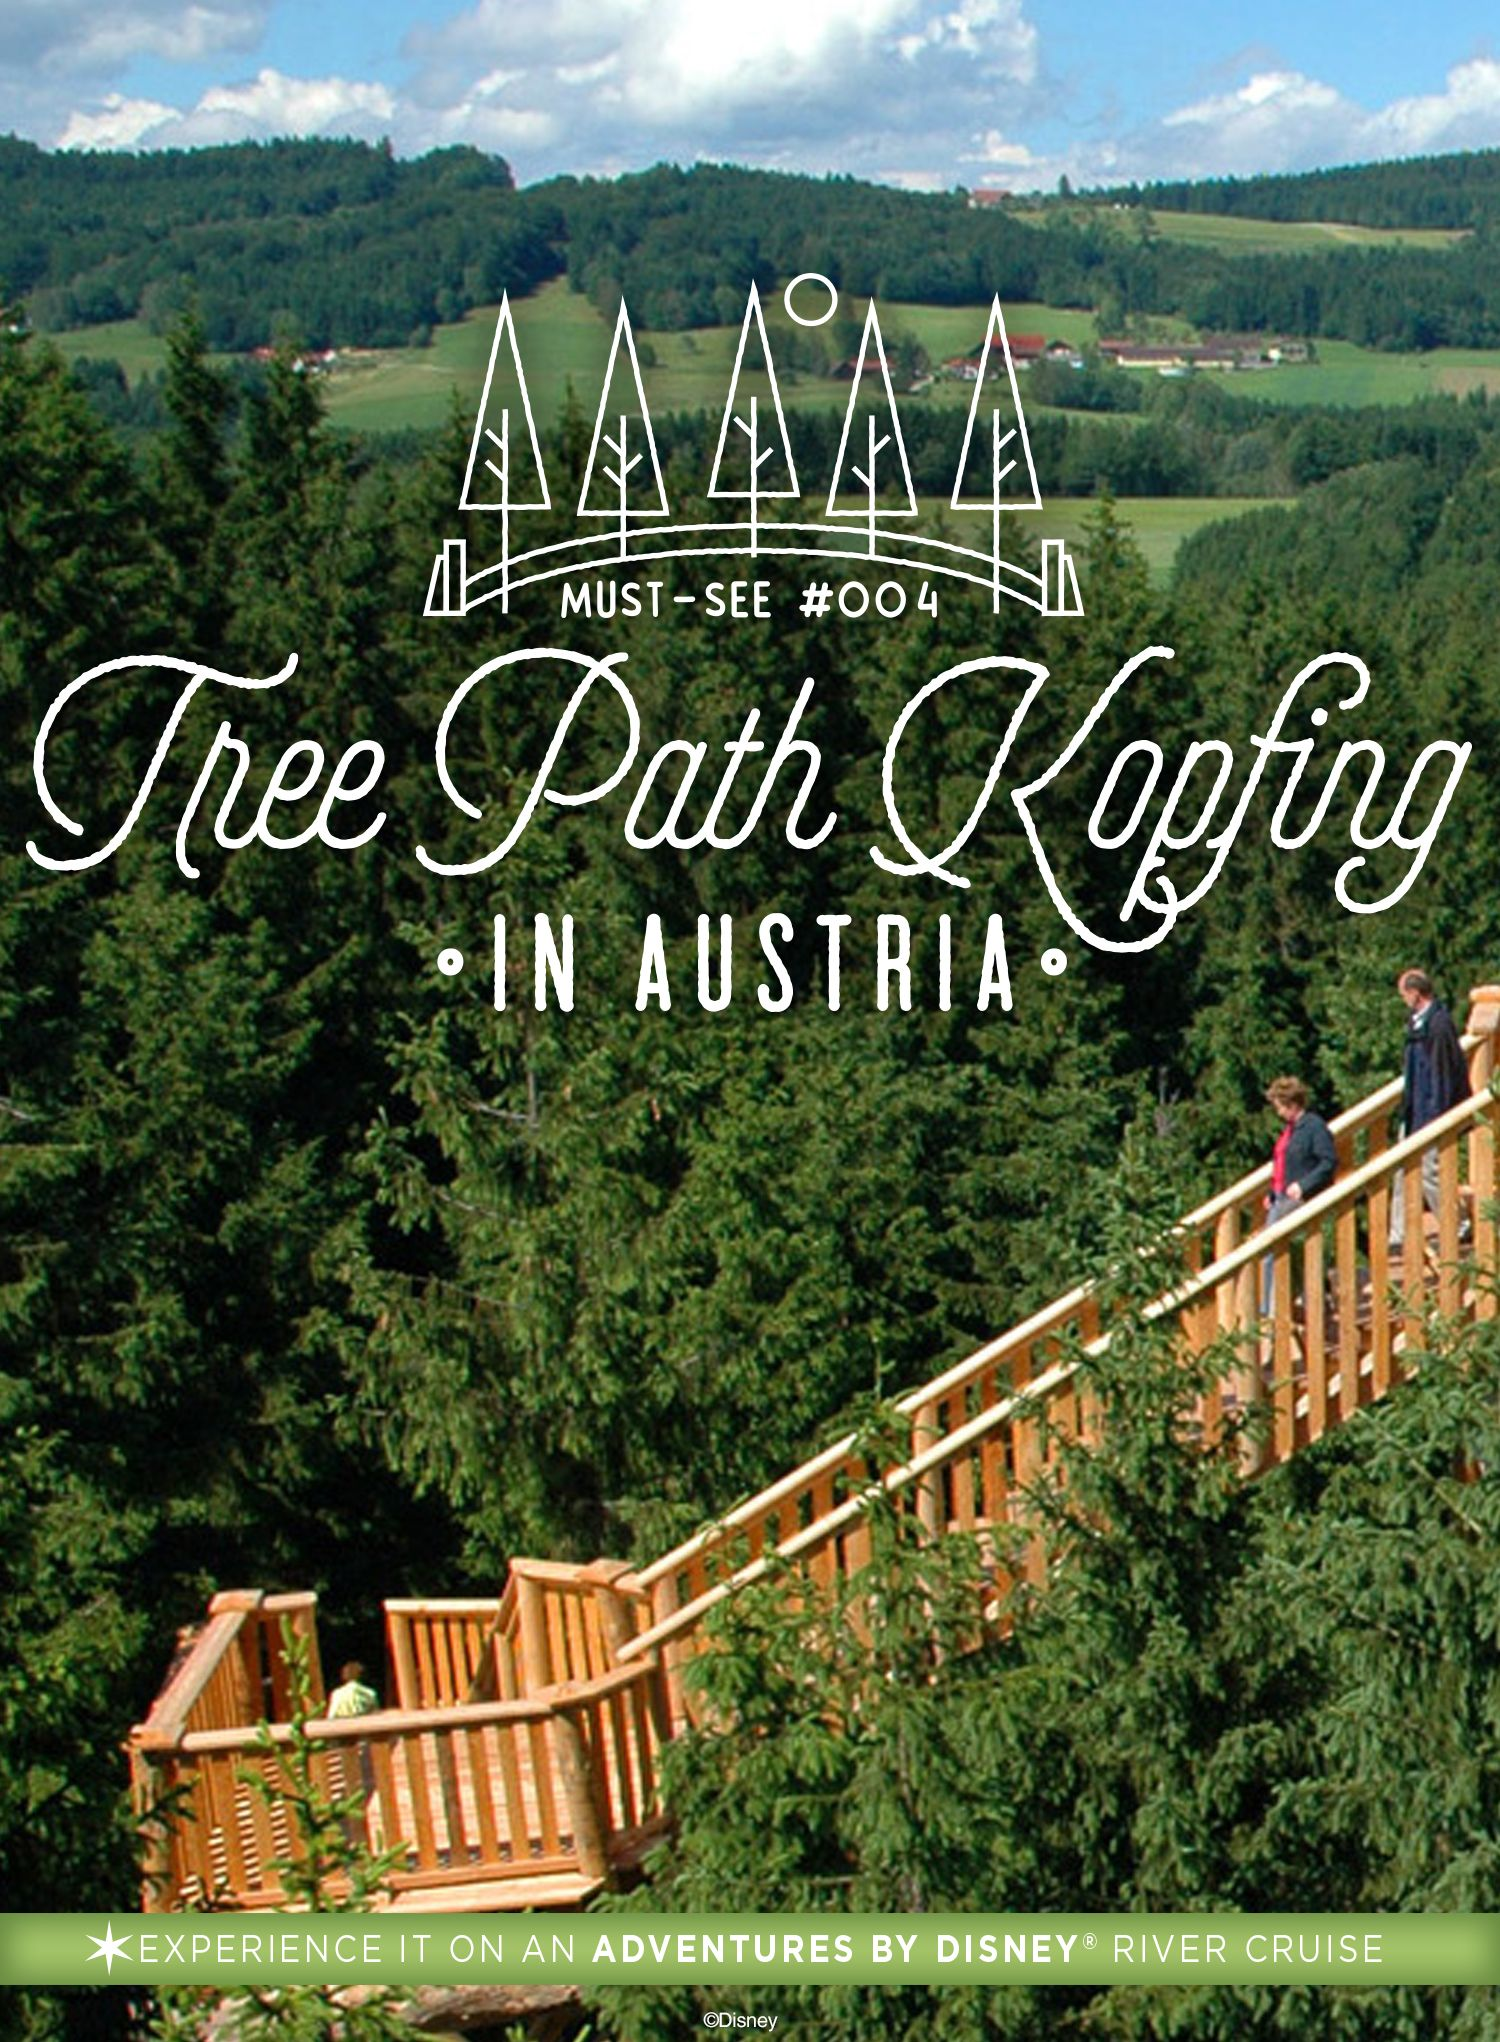 Climb The Famous Tree Path Kopfing On Our River Cruise